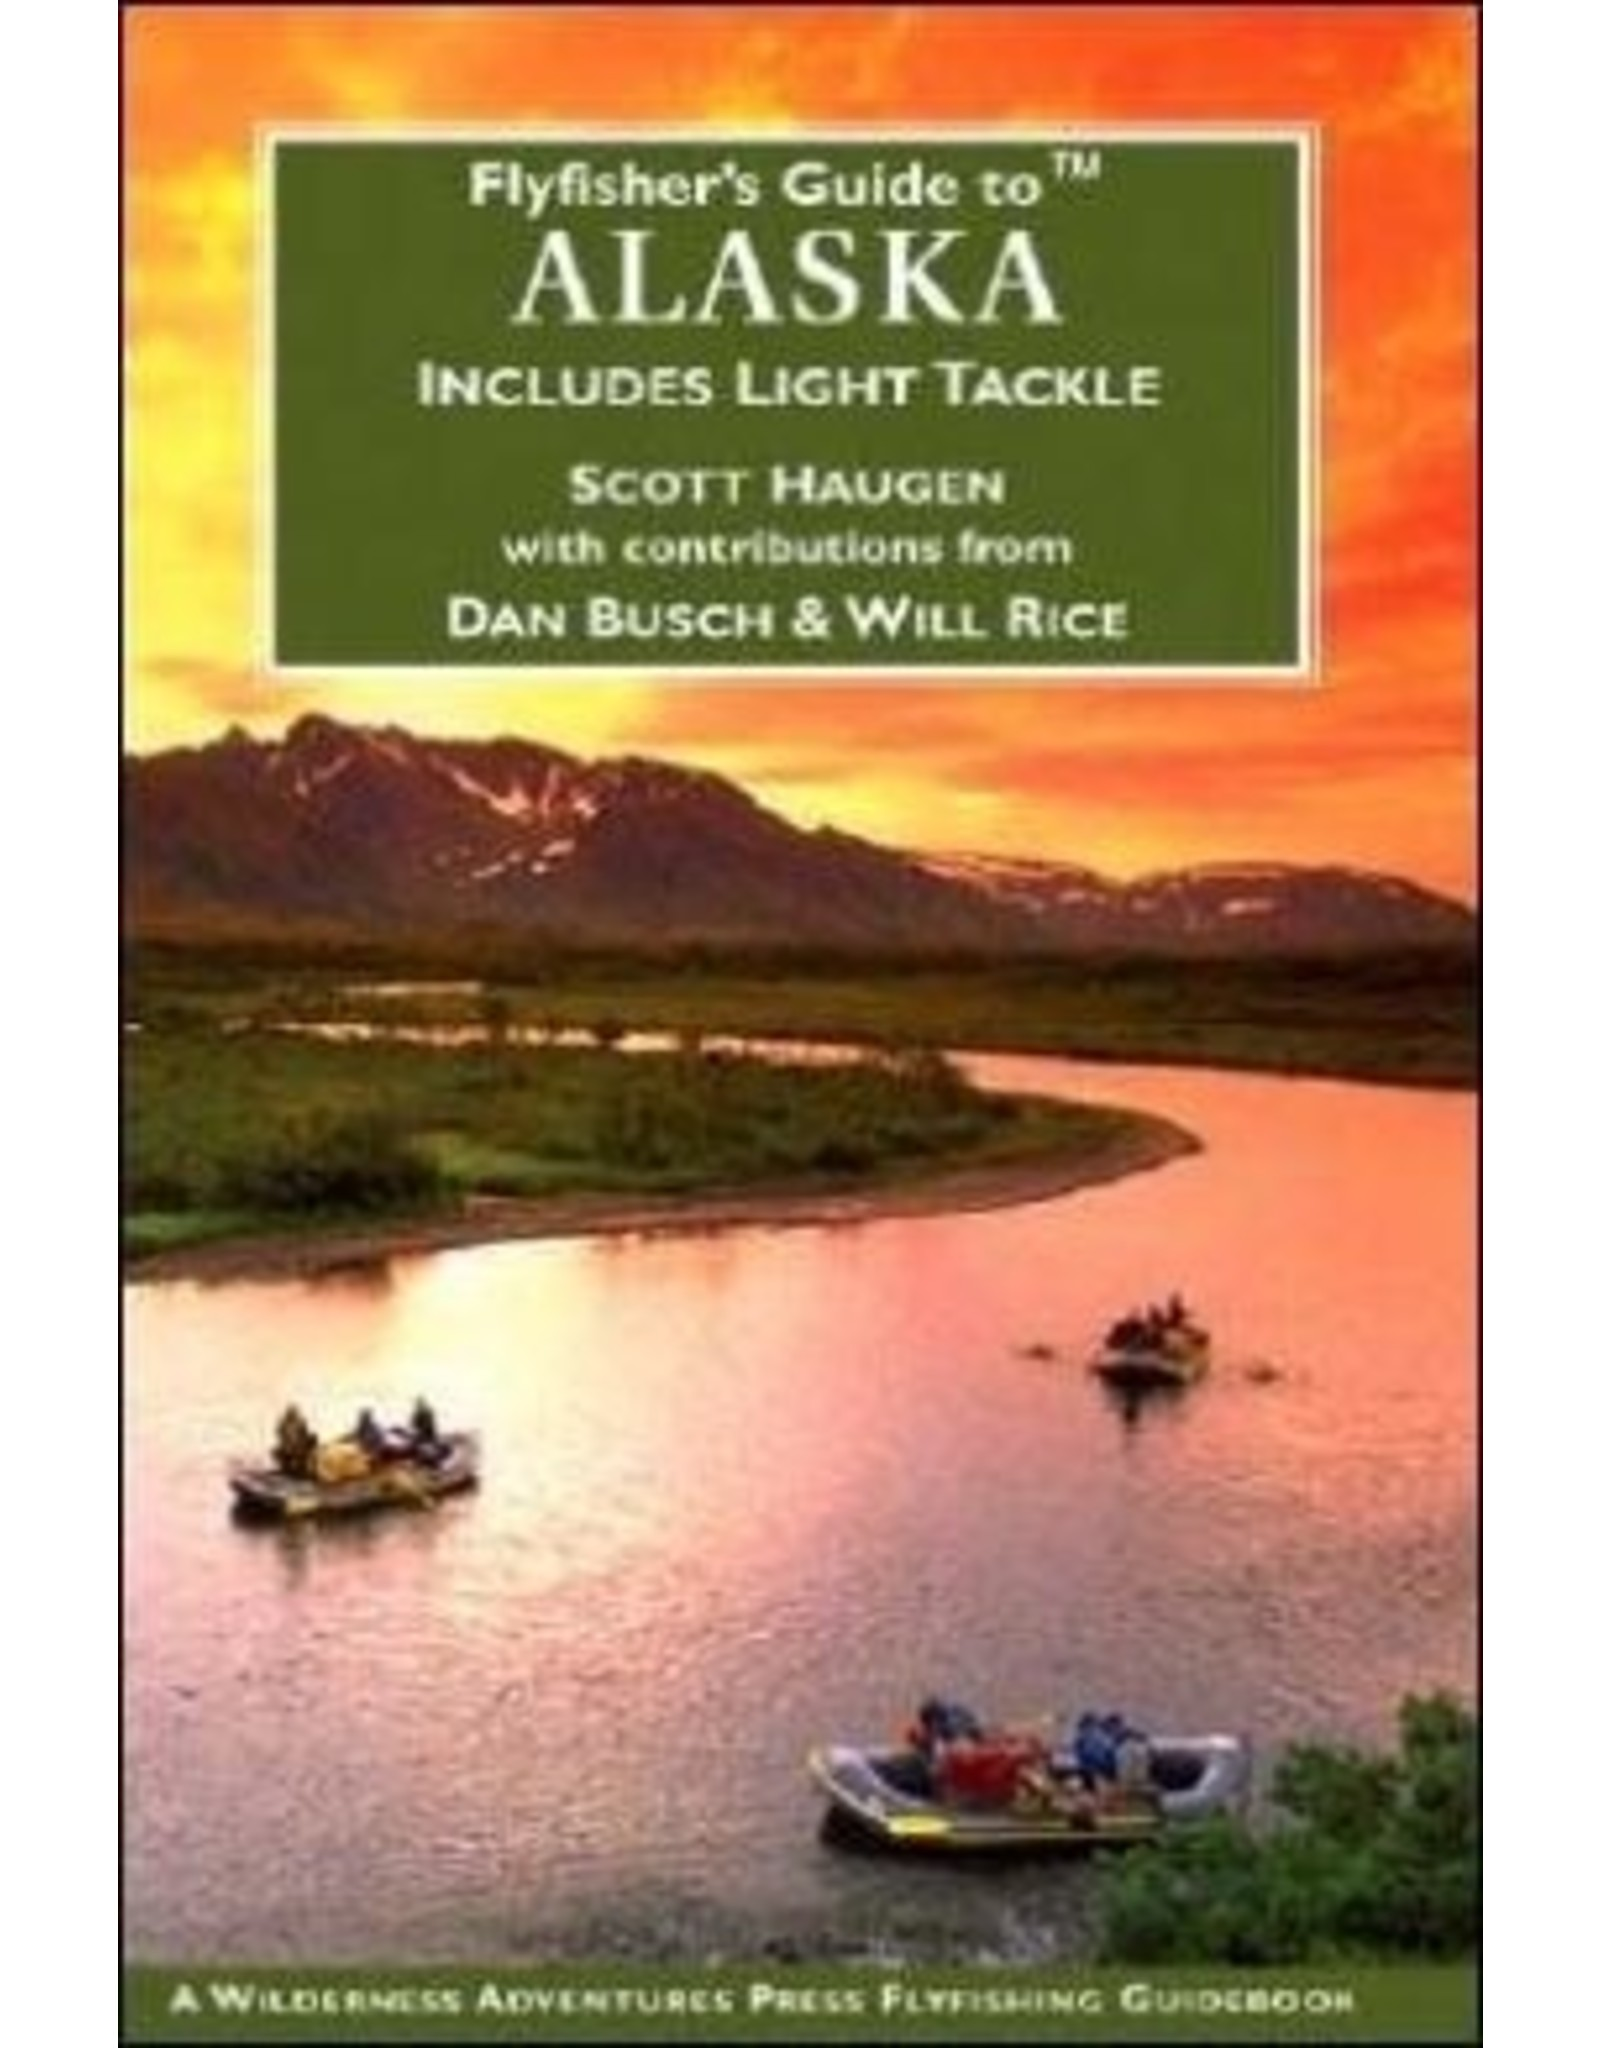 Books Flyfisher's Guide to Alaska